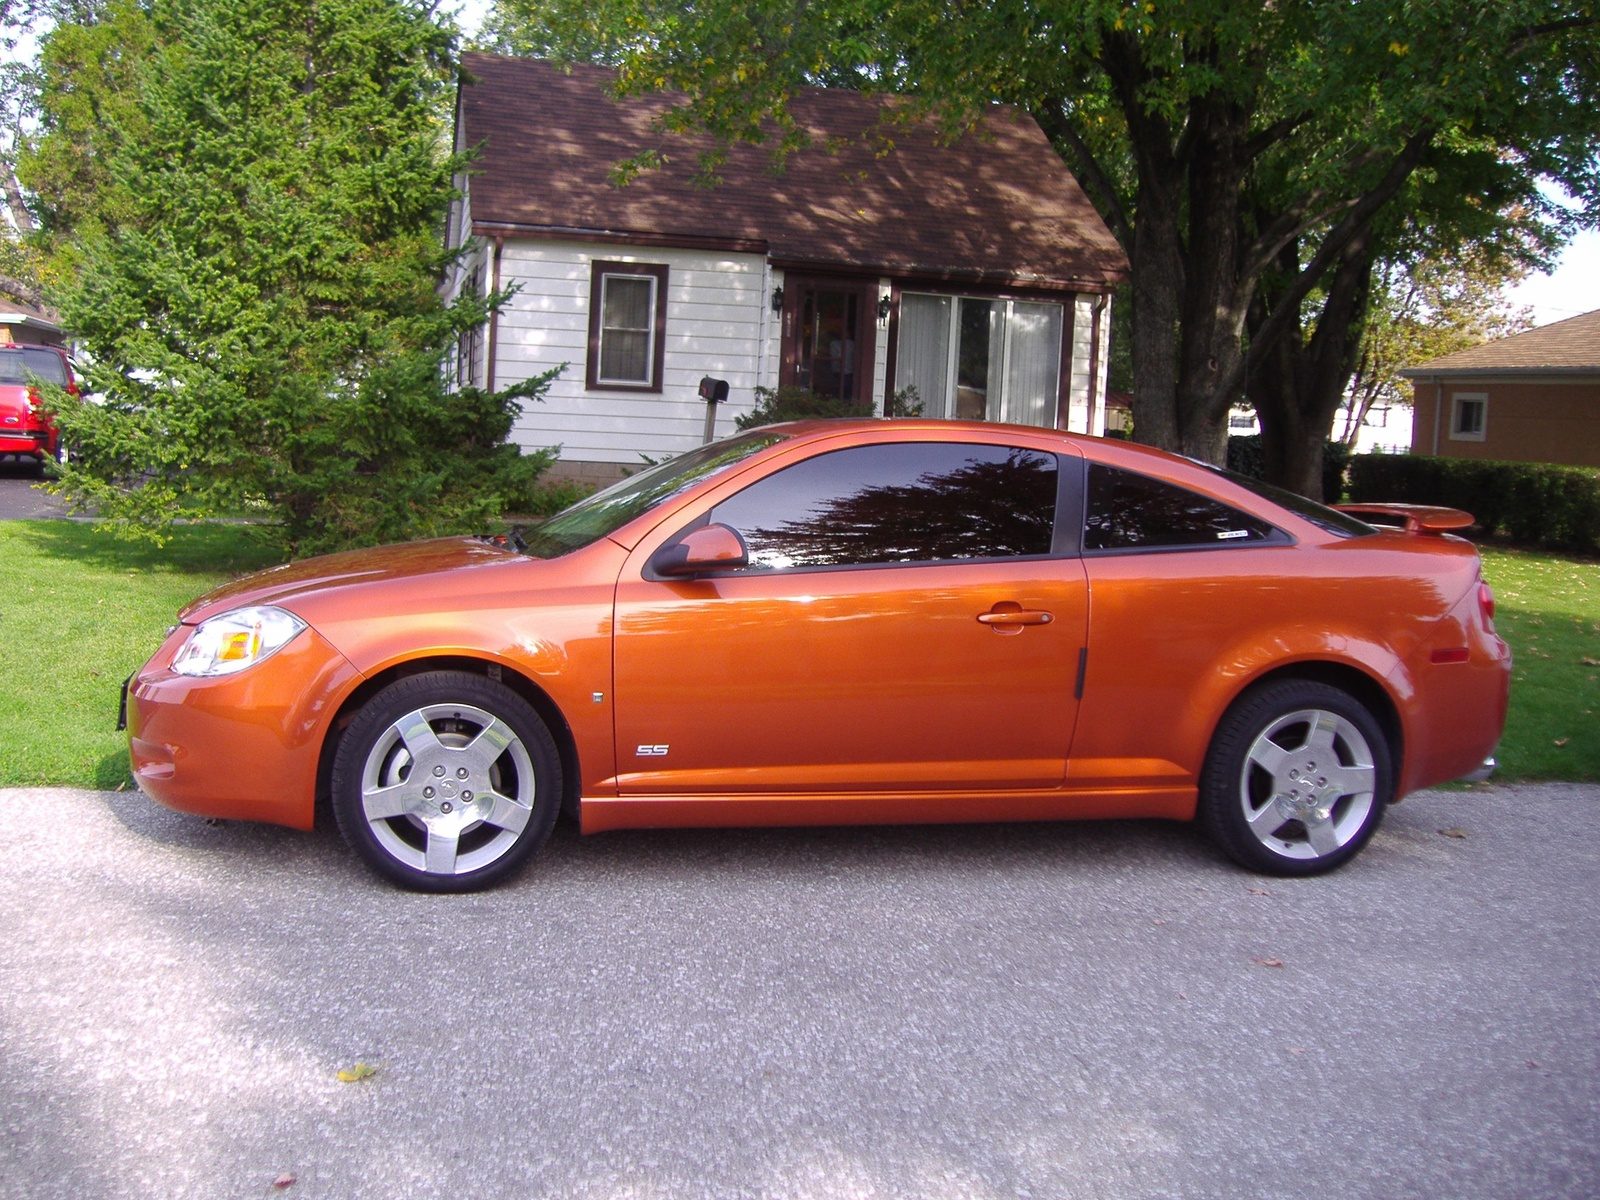 2006 chevrolet cobalt ss coupe picture. Black Bedroom Furniture Sets. Home Design Ideas